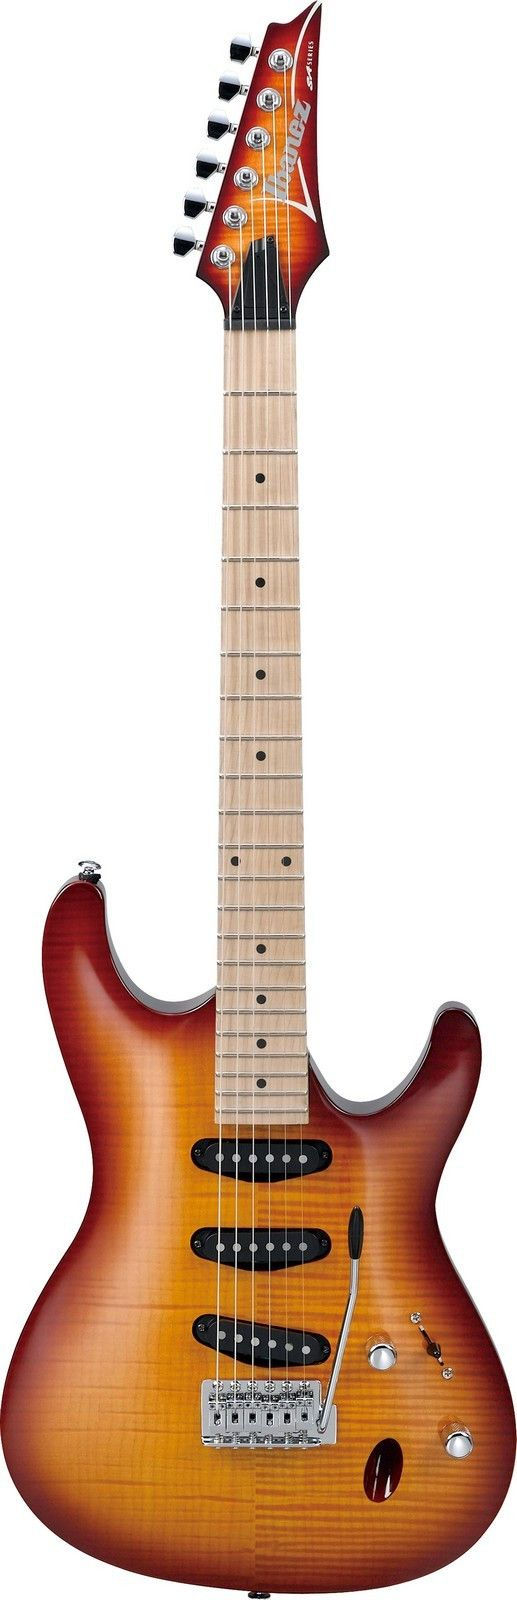 1295 best images about Ibanez guitars on Pinterest | Ibanez ...